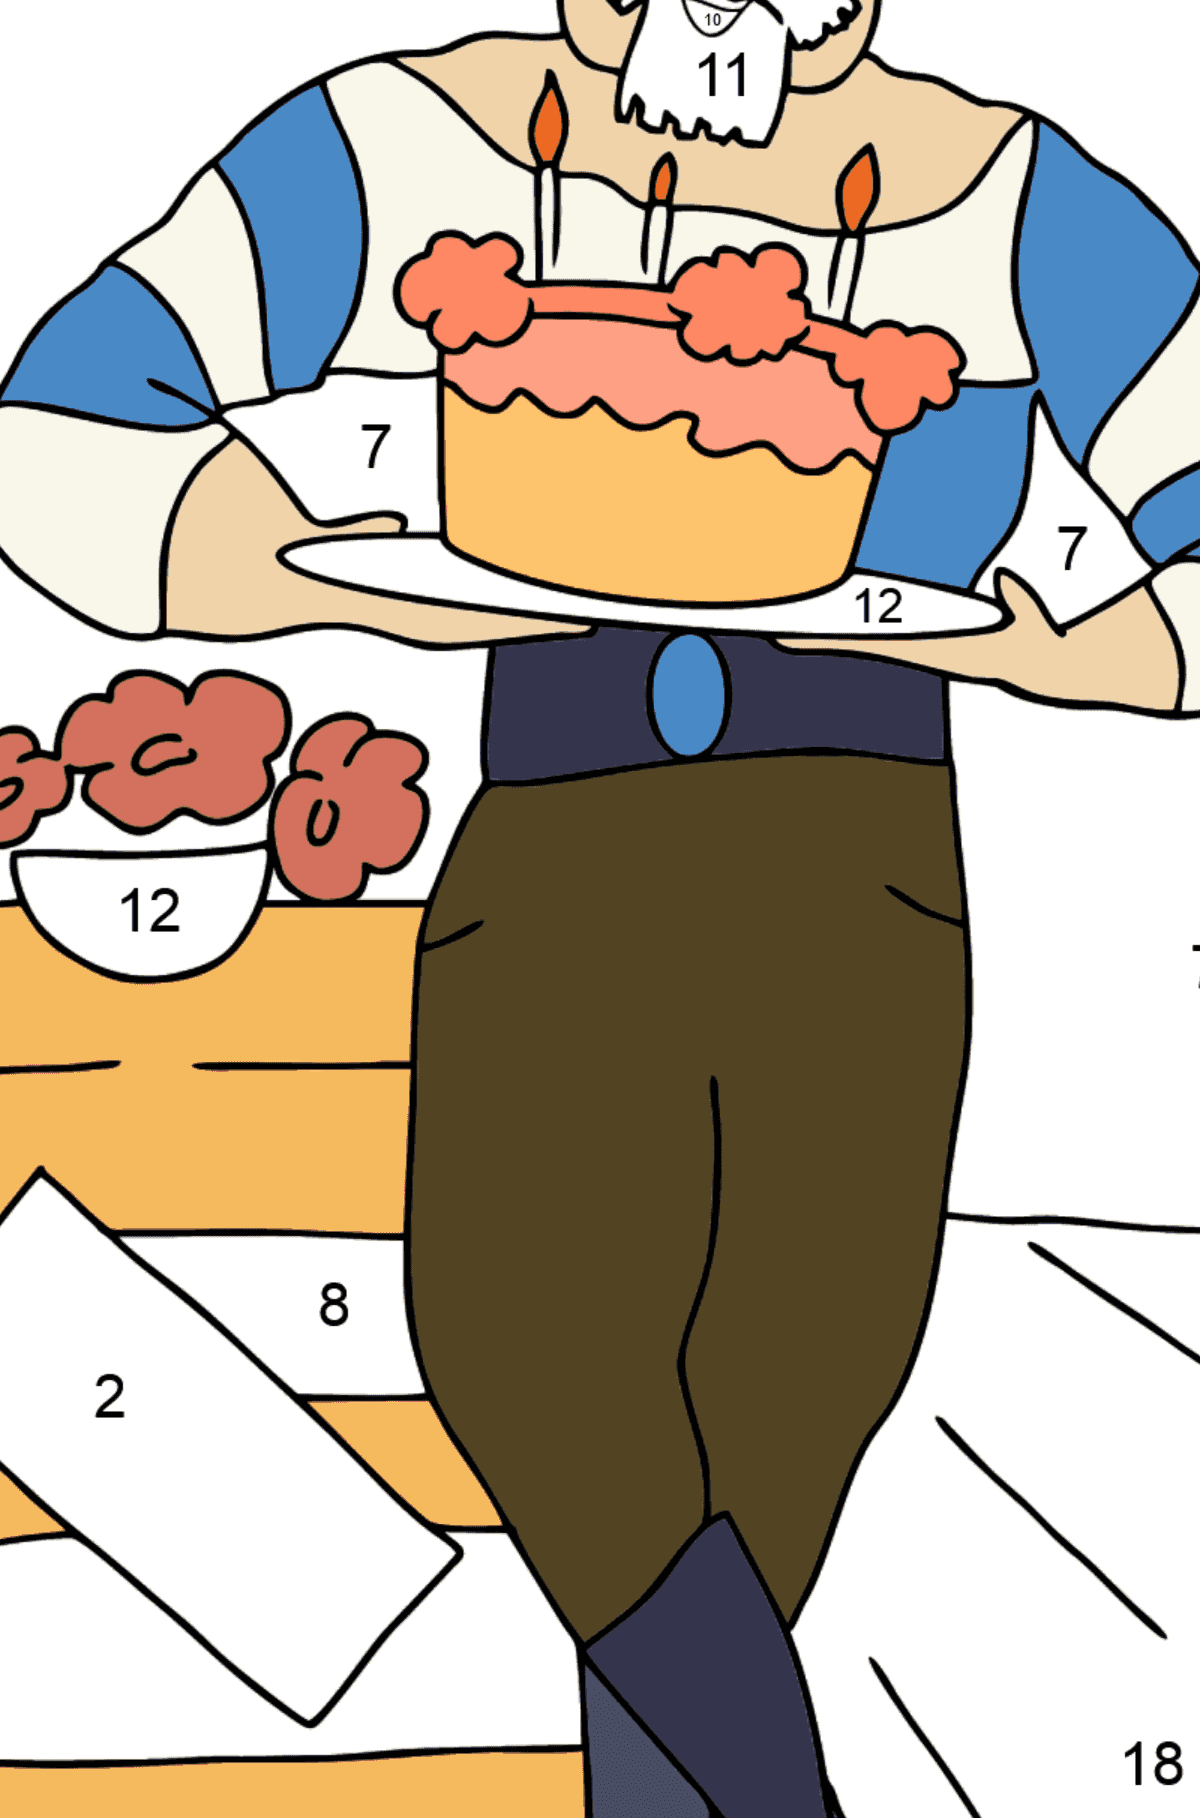 Coloring Page - A Pirate with Cake - Coloring by Numbers for Kids